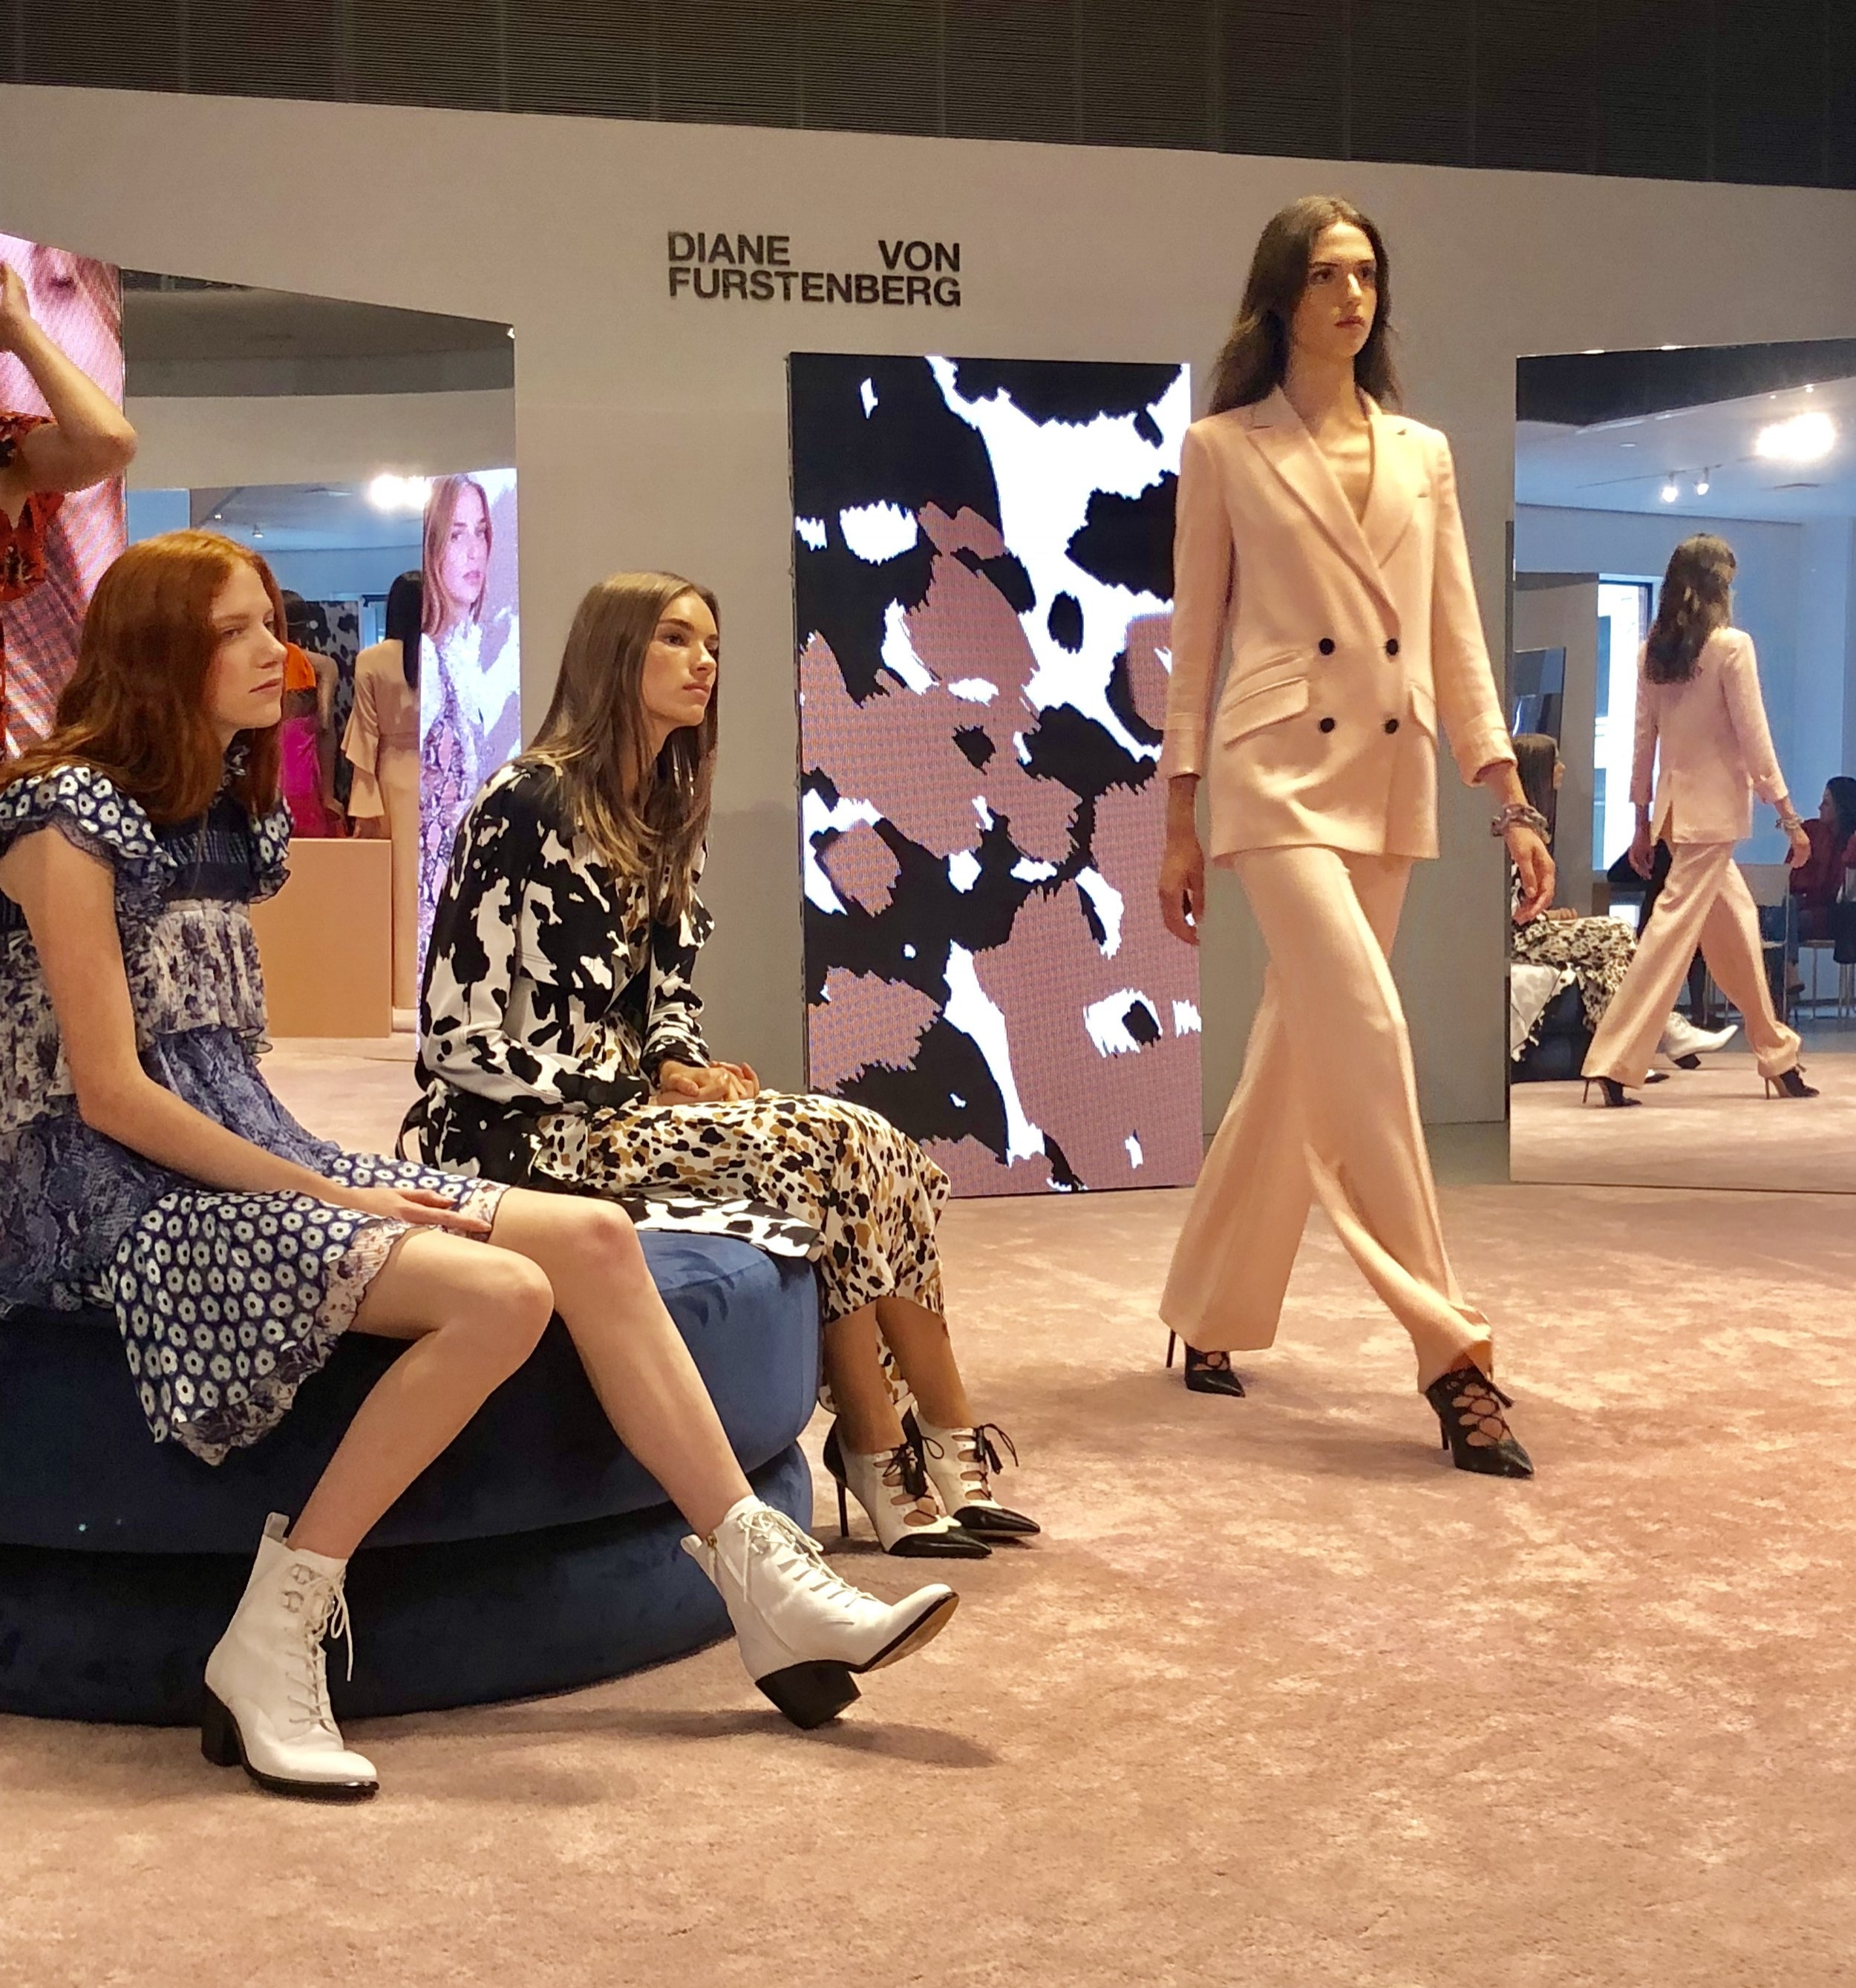 Diane von Furstenberg SS19 presented at DVF HQ in the Meatpacking District during New York Fashion Week.